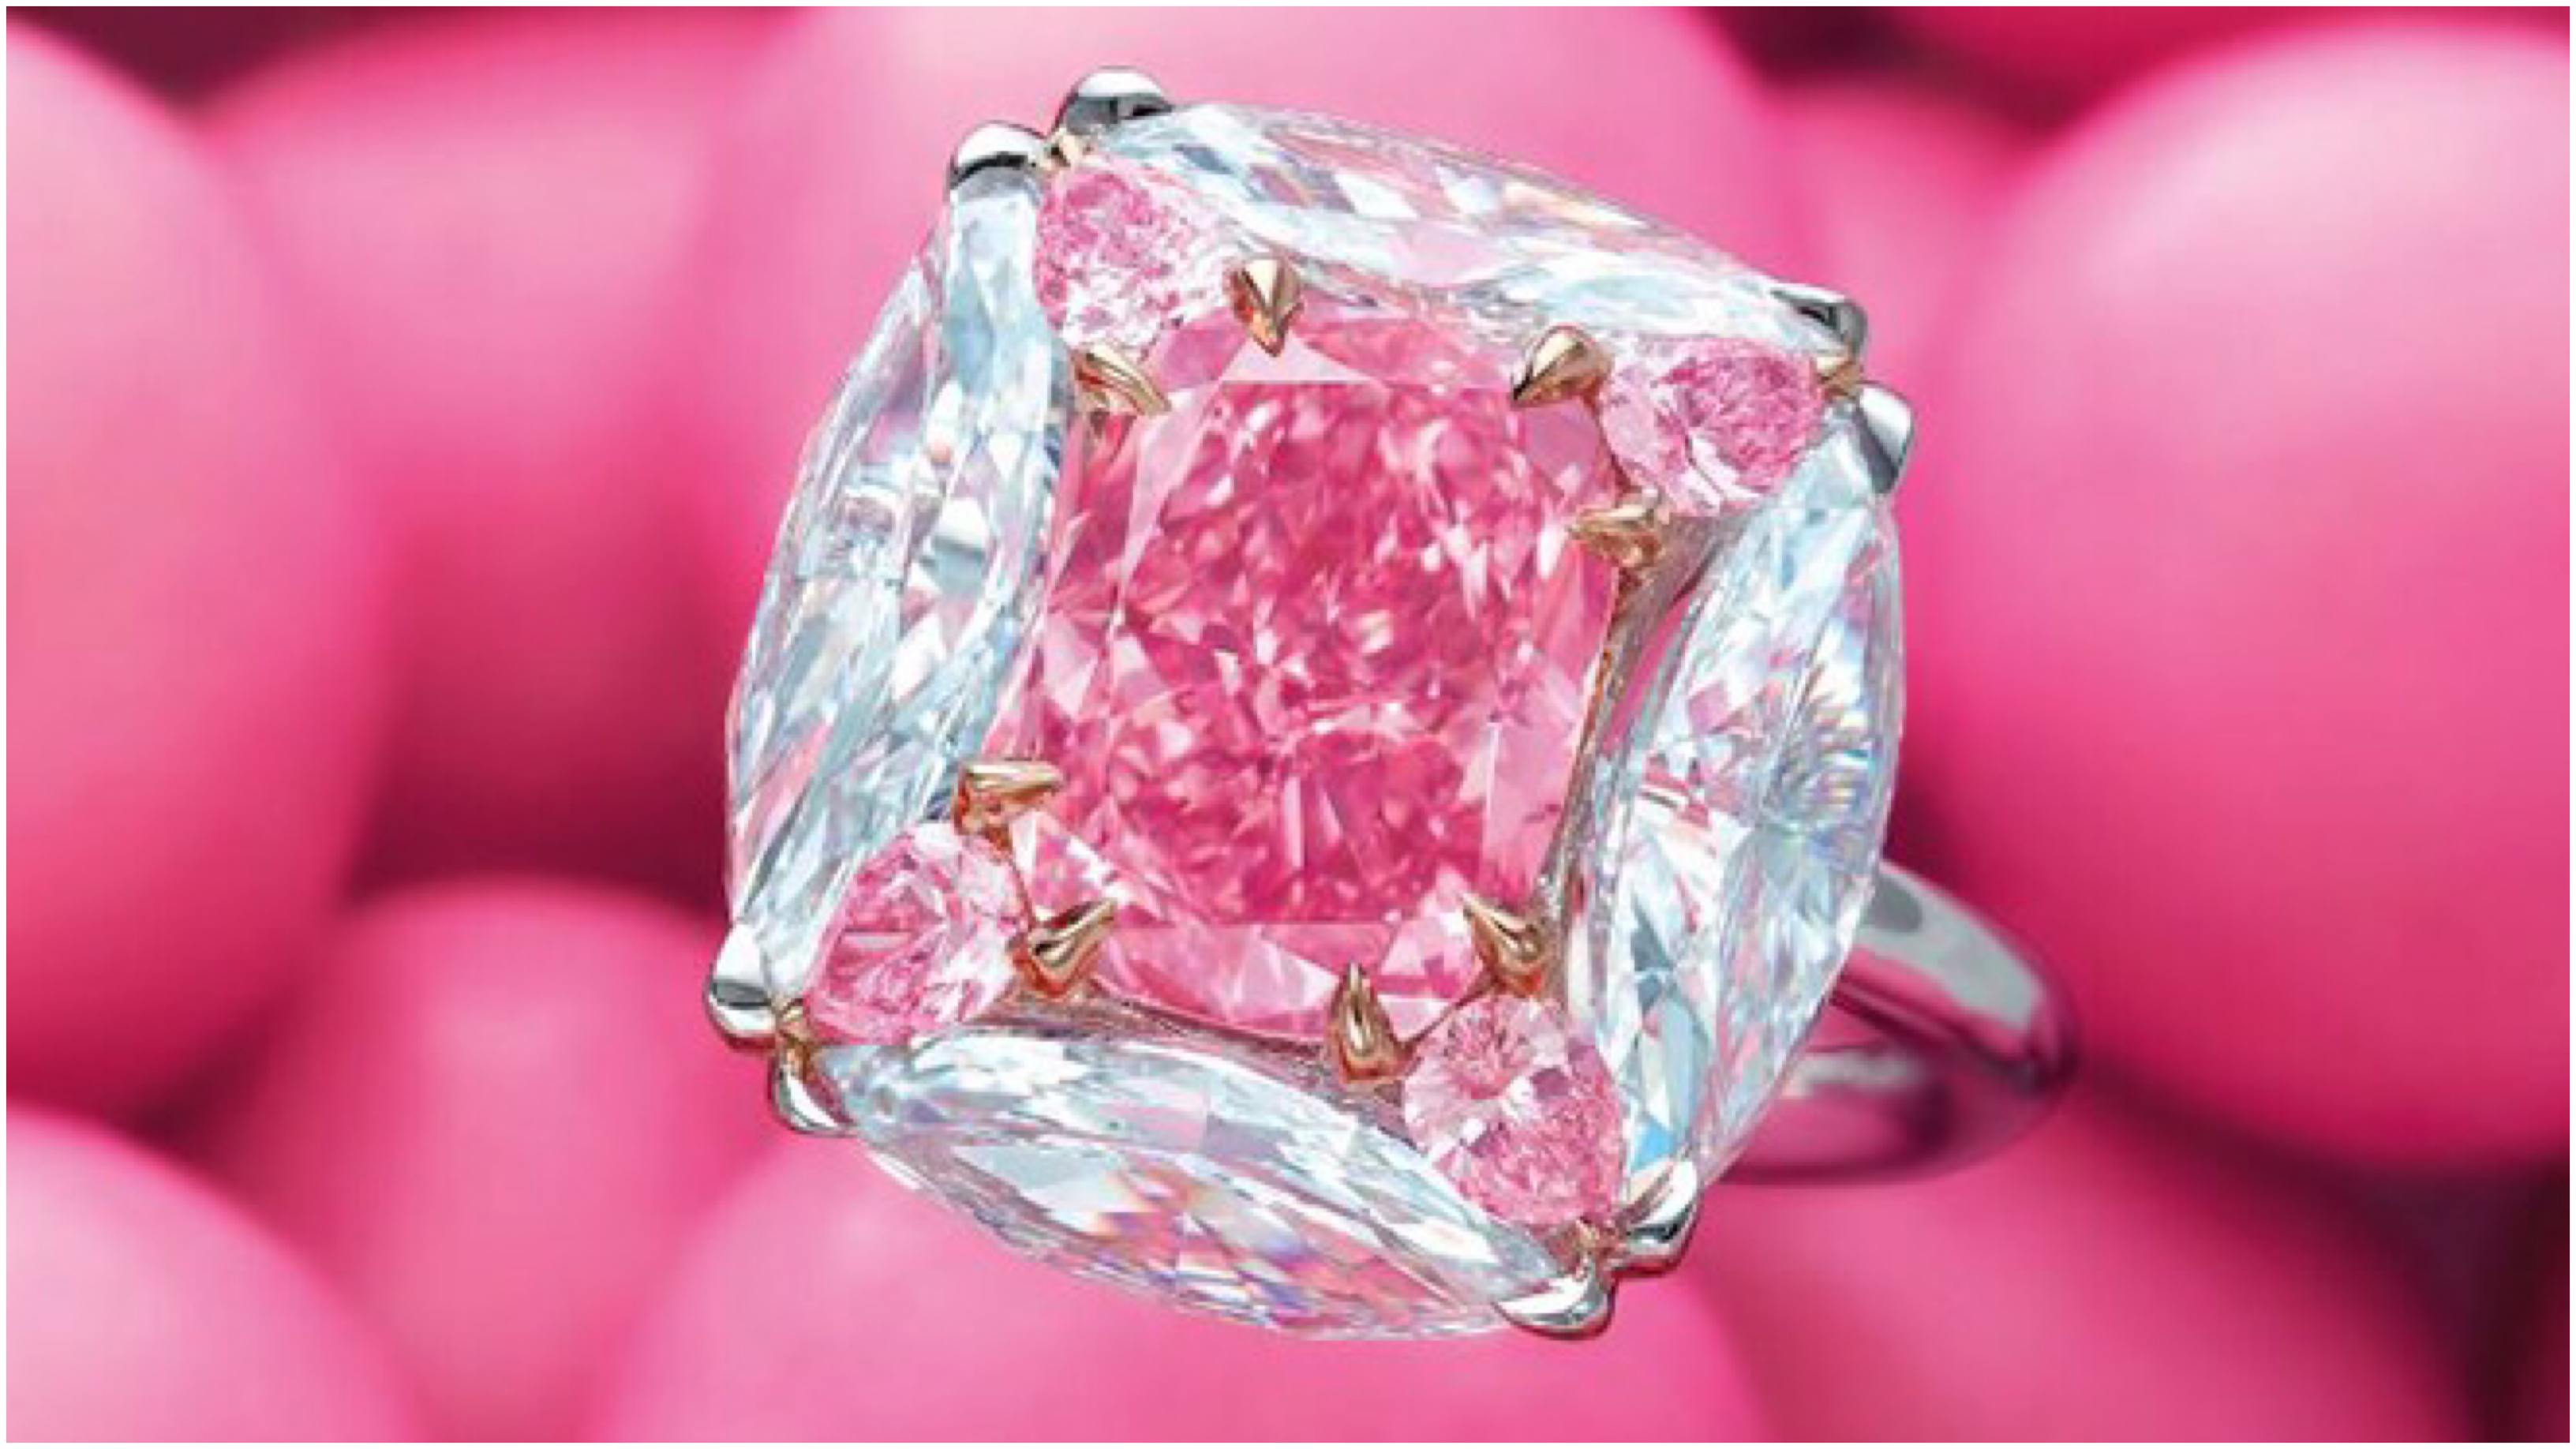 Known for its bubblegum pink appearance, the 'Strongest Pink' gem was one of the premier lots sold during the Magnificent Jewels event held regularly by the famed auction house.